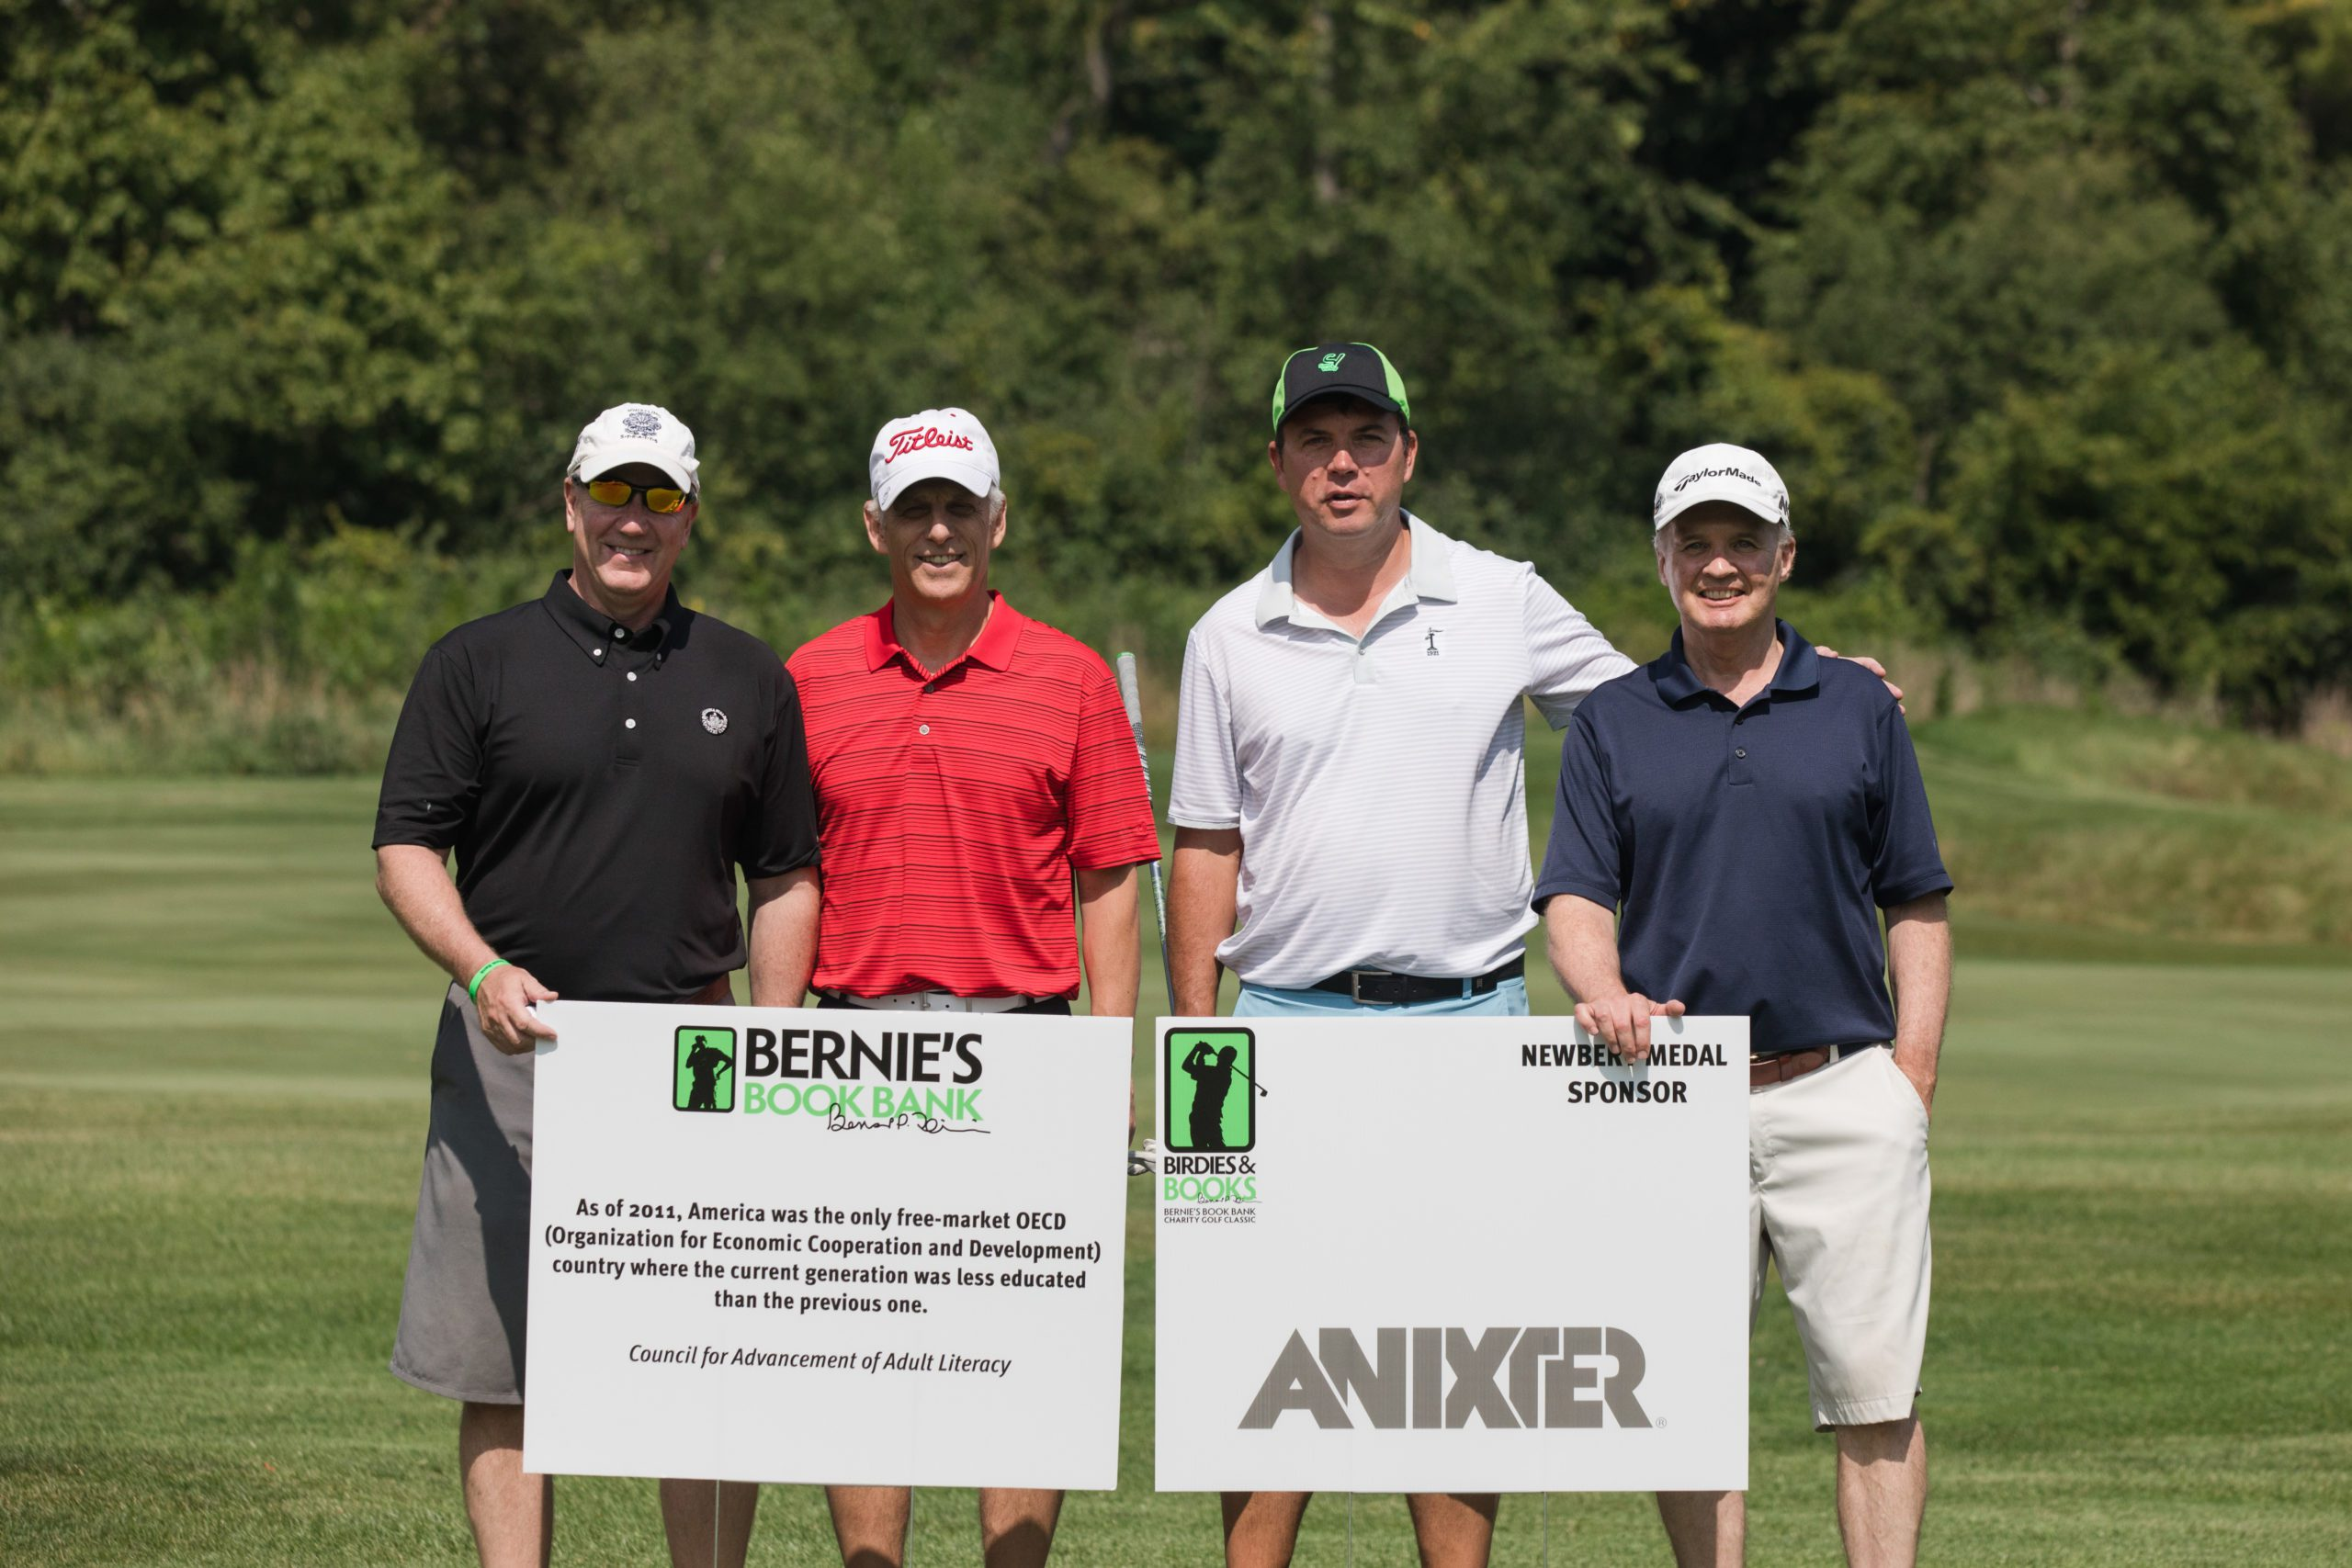 2017 Birdies & Books Charity Golf Classic